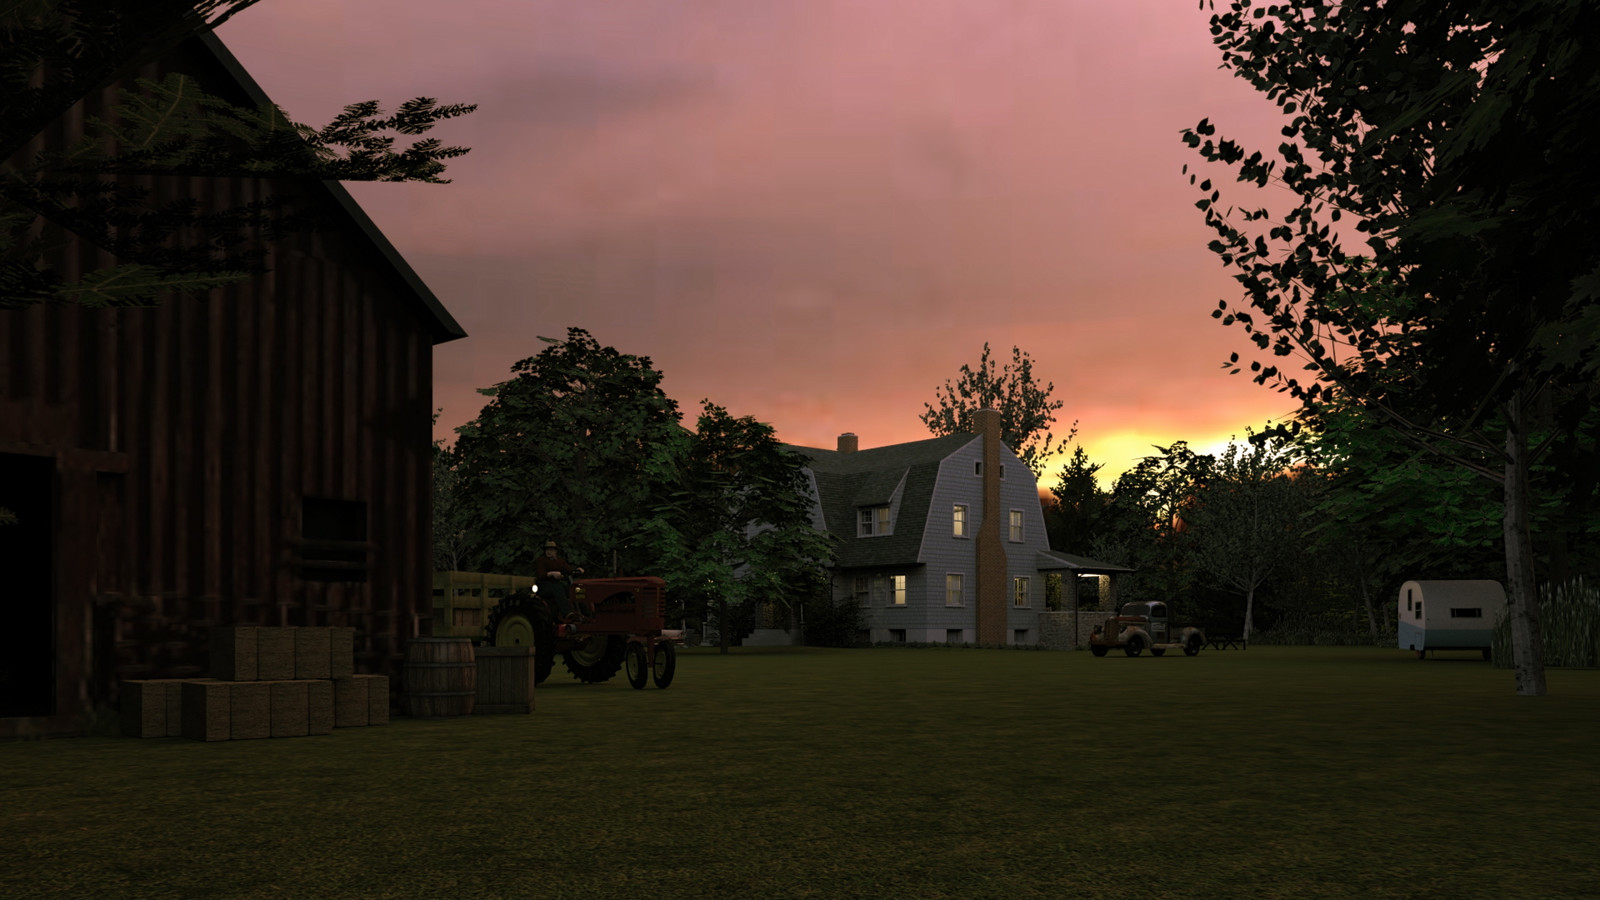 """""""Mason Farm - Sight For Soar Eyes (B)"""" Magic Hour Collection  24 Masonfarm HD1080 17b - iP Kodac  """"SketchUp to LayOut"""" The Mason Farm Renders for the launching of the new book """"SketchUp to LayOut"""" http://bit.ly/2j0d0Wh by MasterSketchup."""